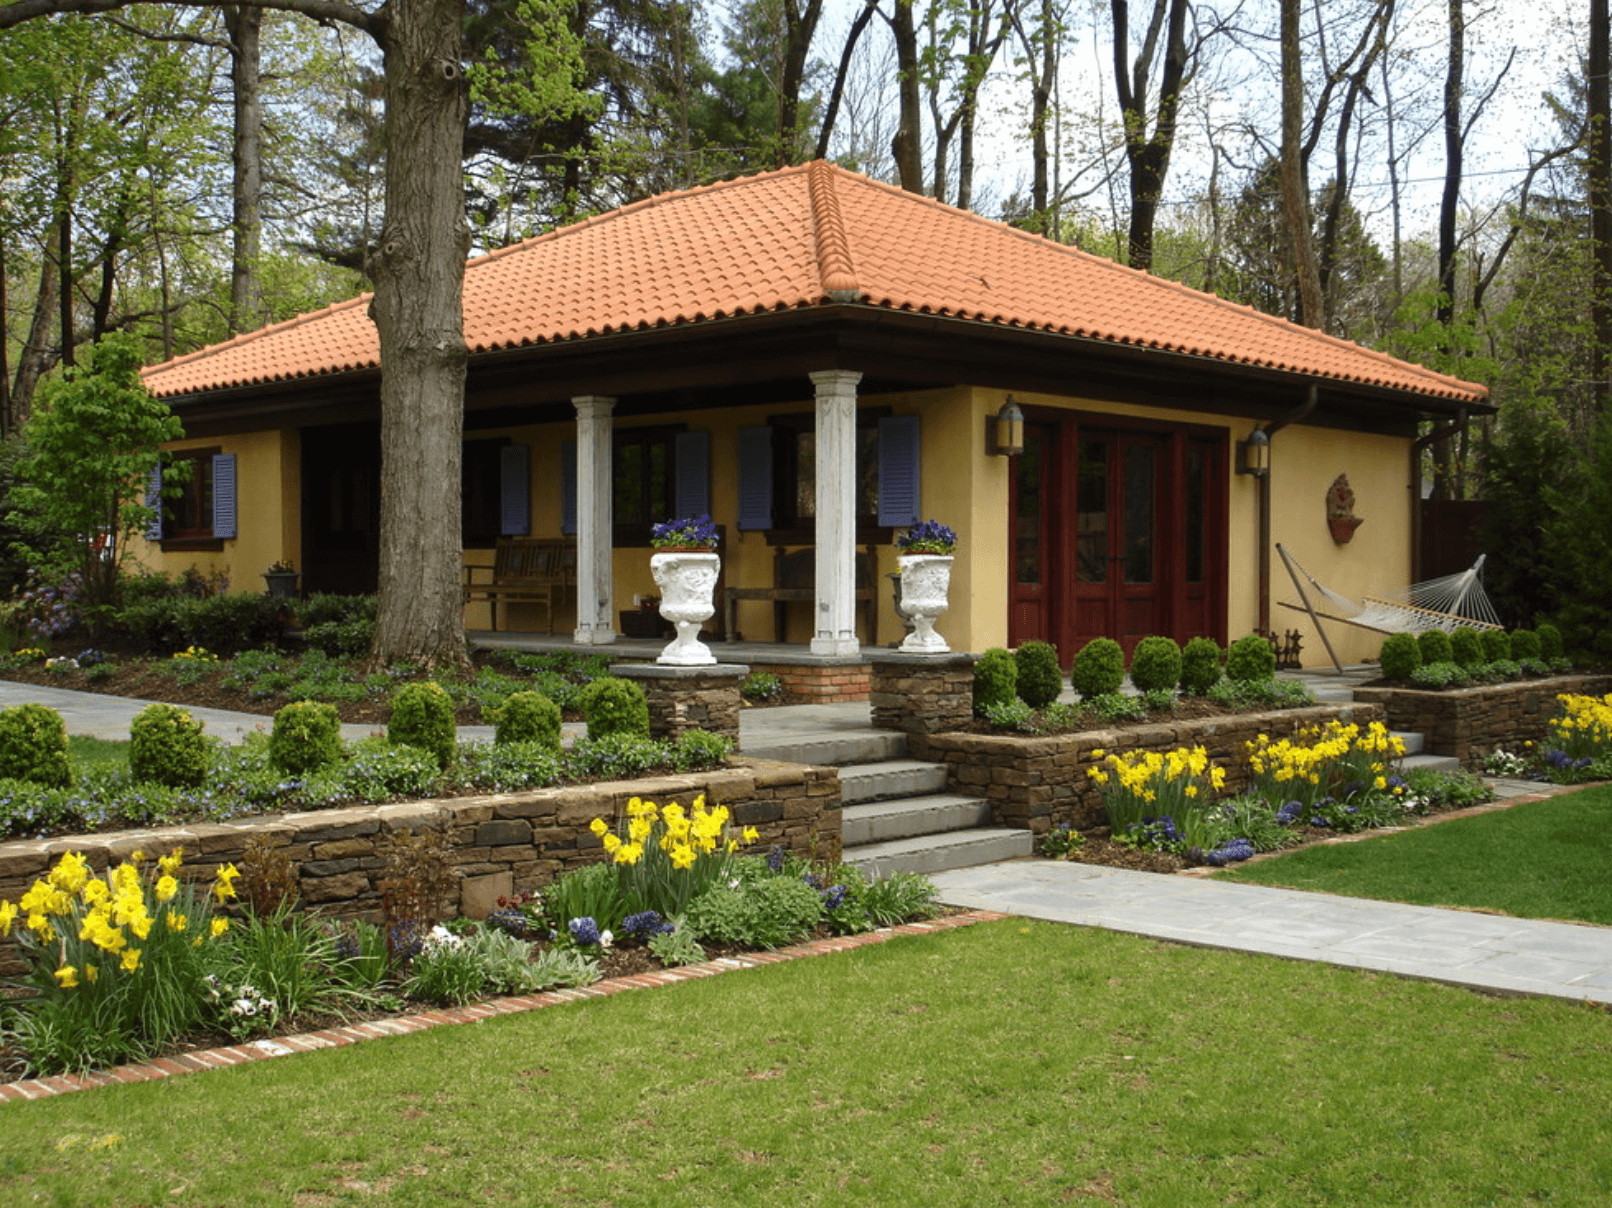 513410426246647792 together with Chic French Country Inspired Home Real  fort And Elegance besides Modern Shed Roof Home Decorating Ideas Exterior Rustic With Rustic Exterior Ideas Traditional Pool Cleaning Supplies besides The Top Lighting Trends Of 2016 furthermore Historic Paint Colors Traditional Exterior Nashville. on traditional farmhouse colors